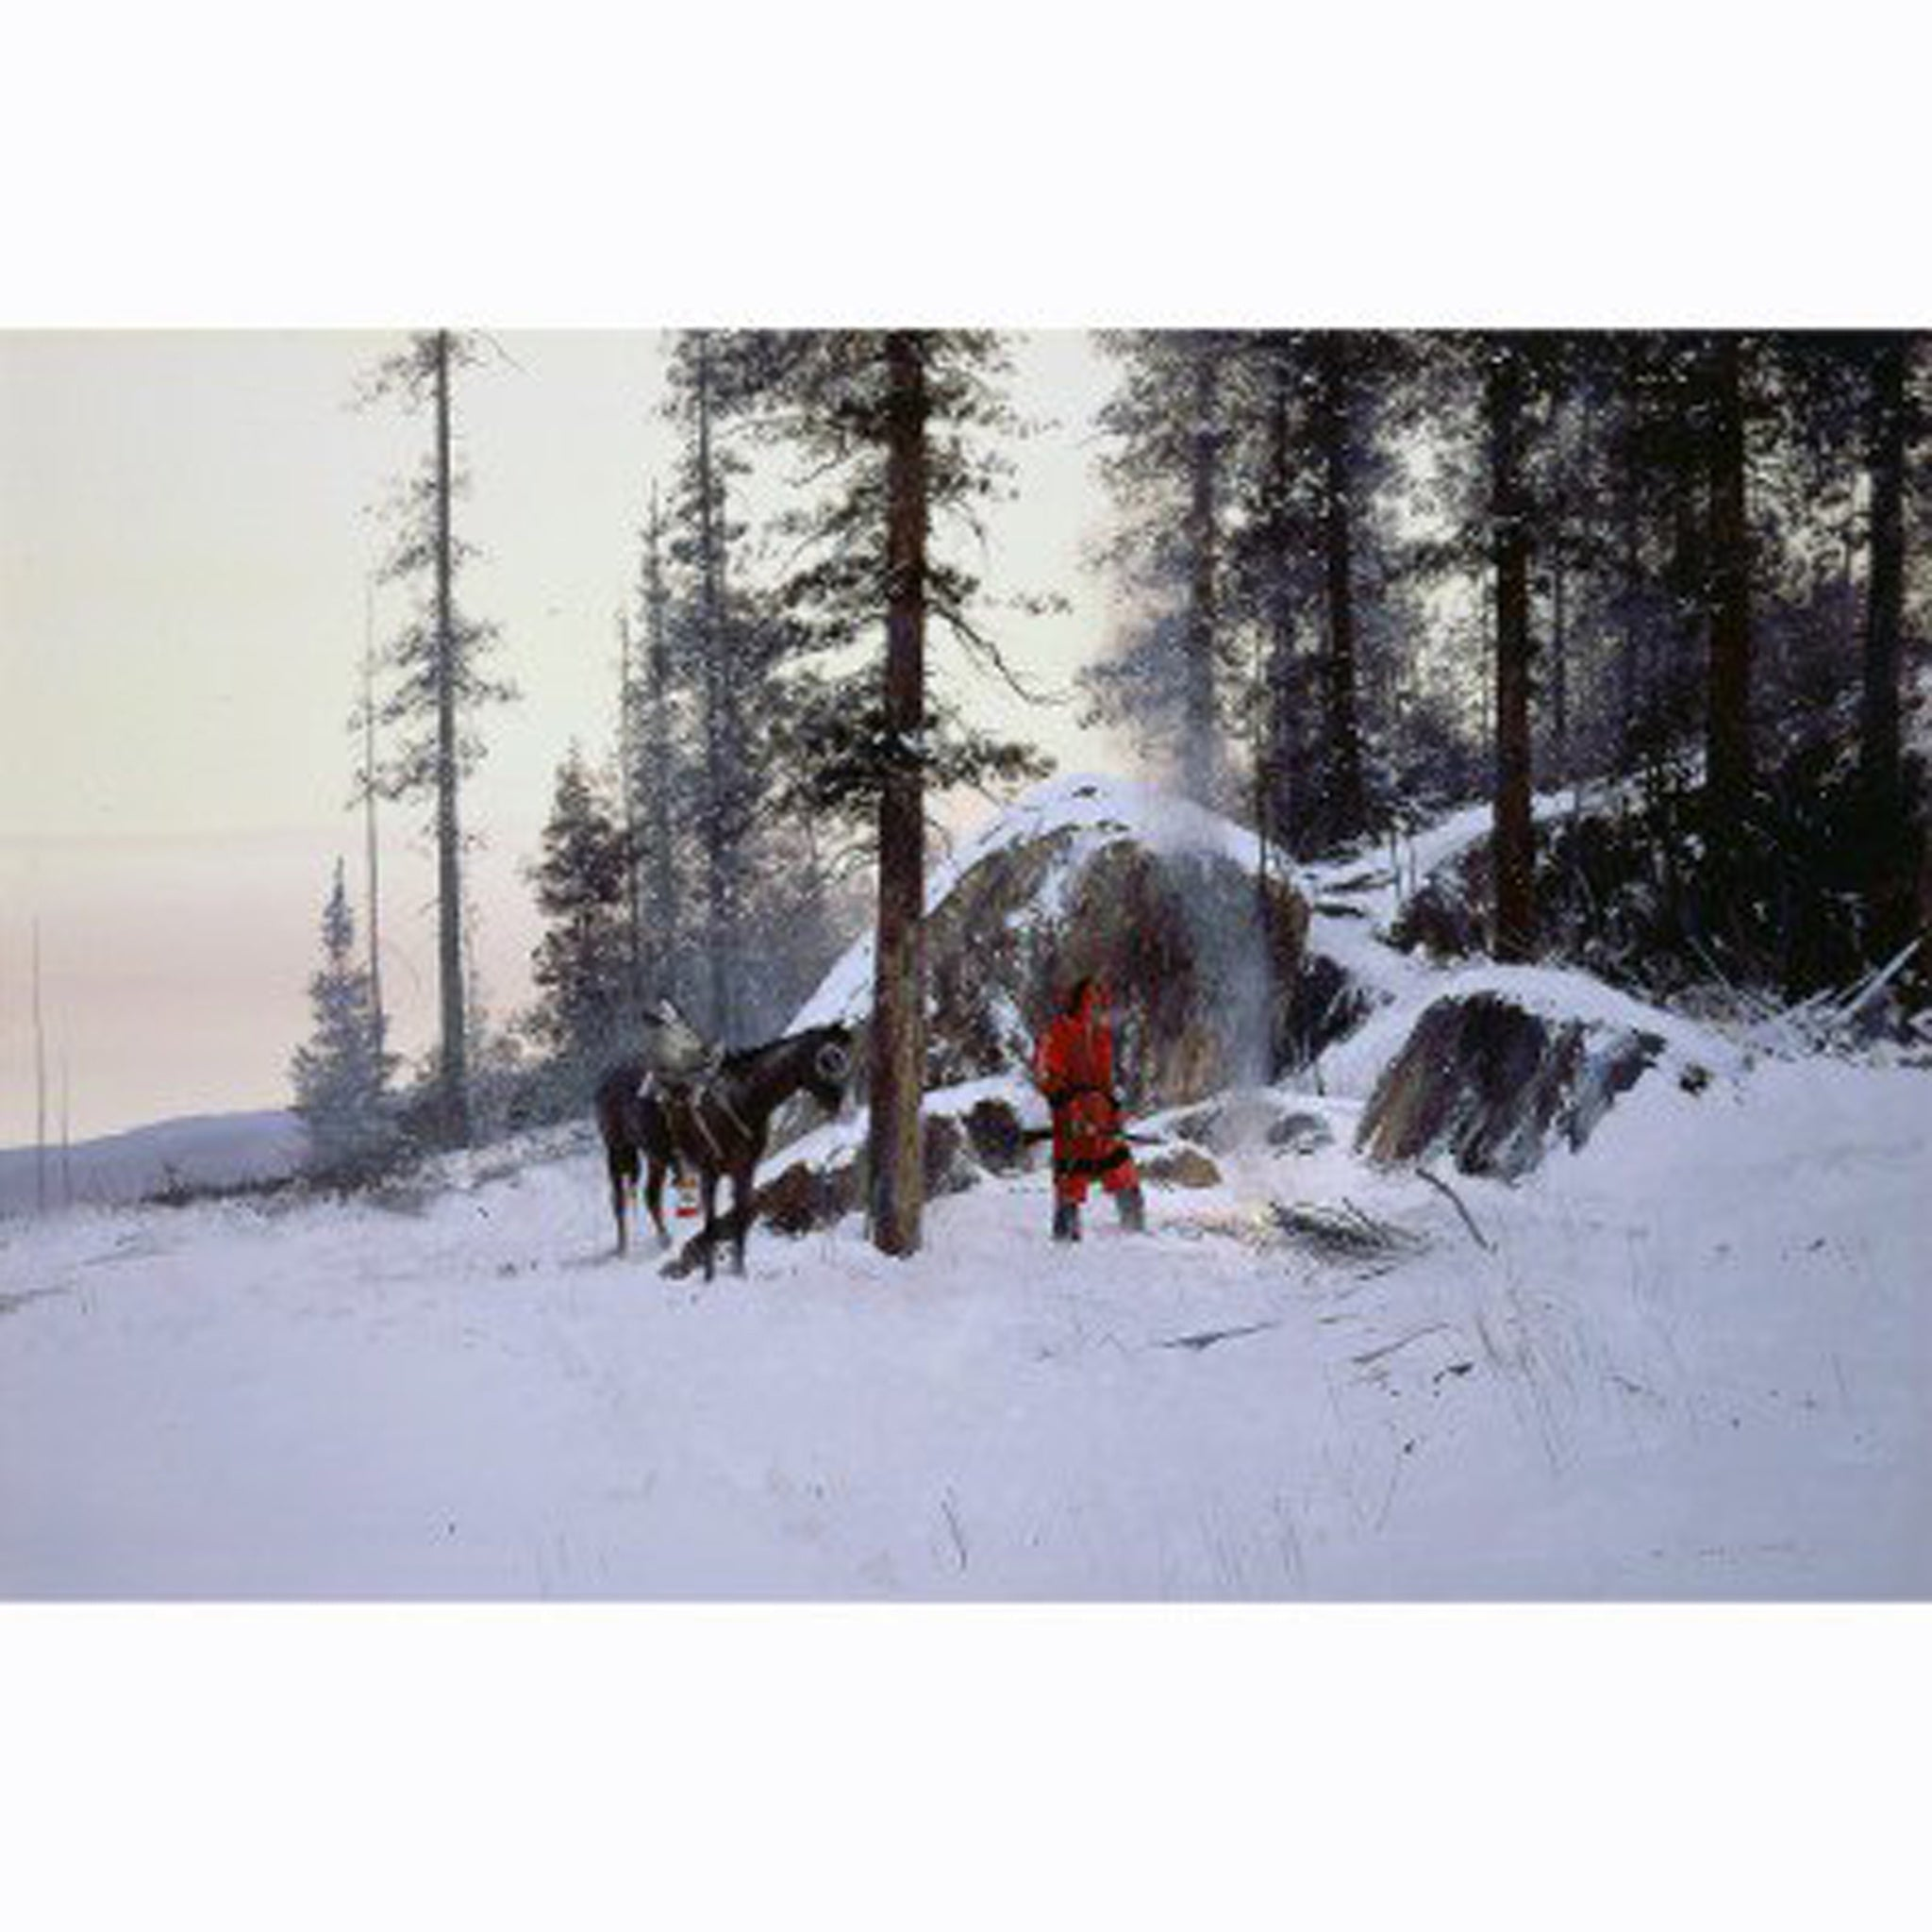 PR 29* WINTER CAMP BY MICHAEL COLEMAN #31047640